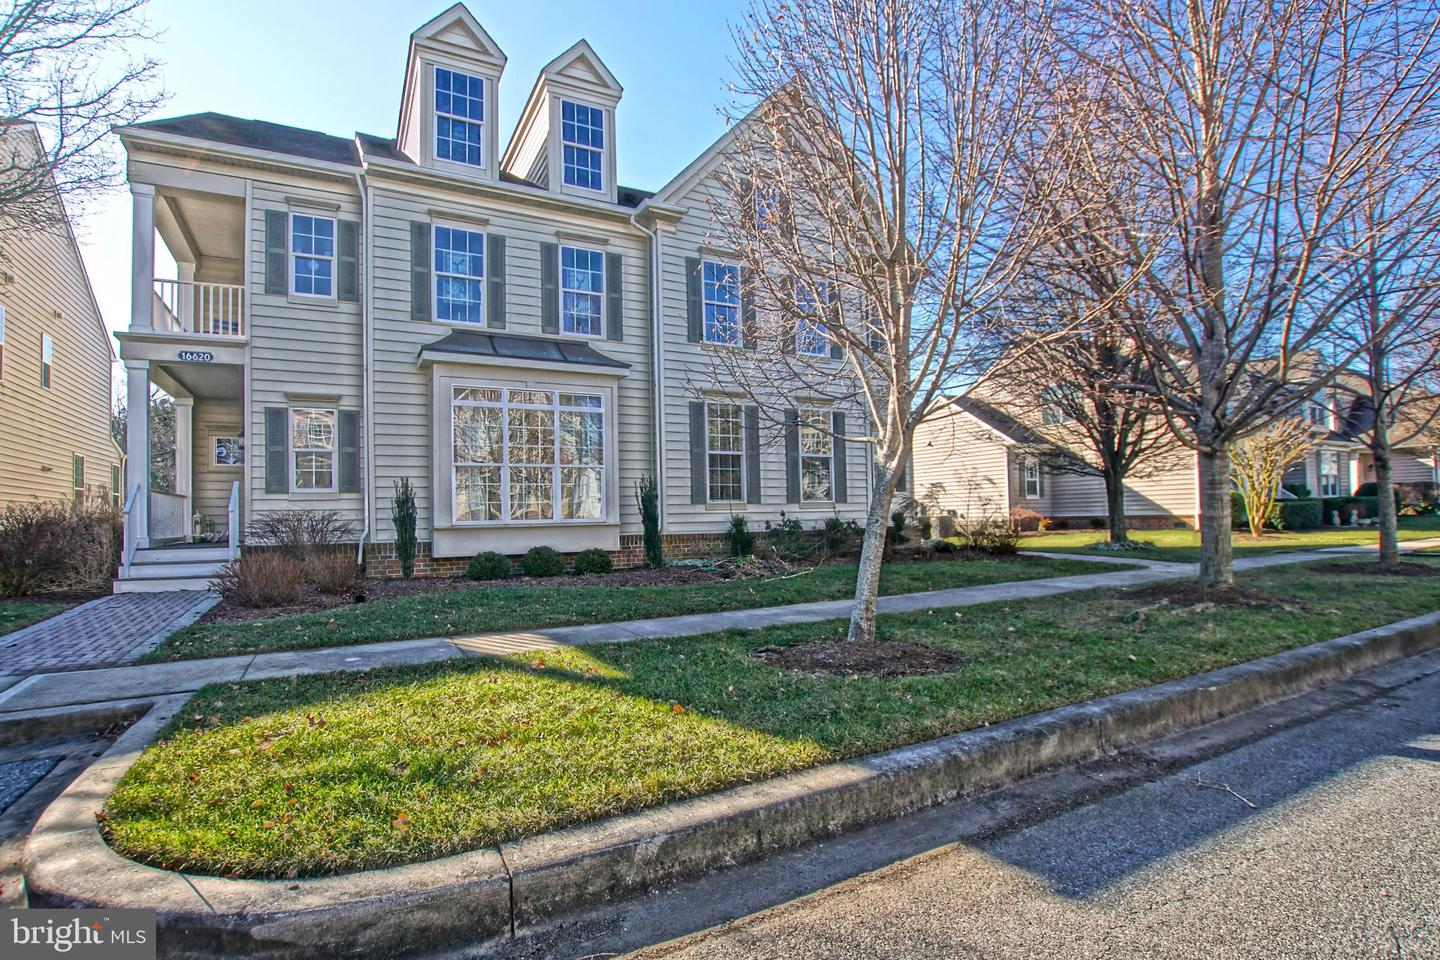 DESU154576-304001513665-2020-03-24-11-46-29 16620 Howard Millman Ln | Milton, DE Real Estate For Sale | MLS# Desu154576  - Lee Ann Group